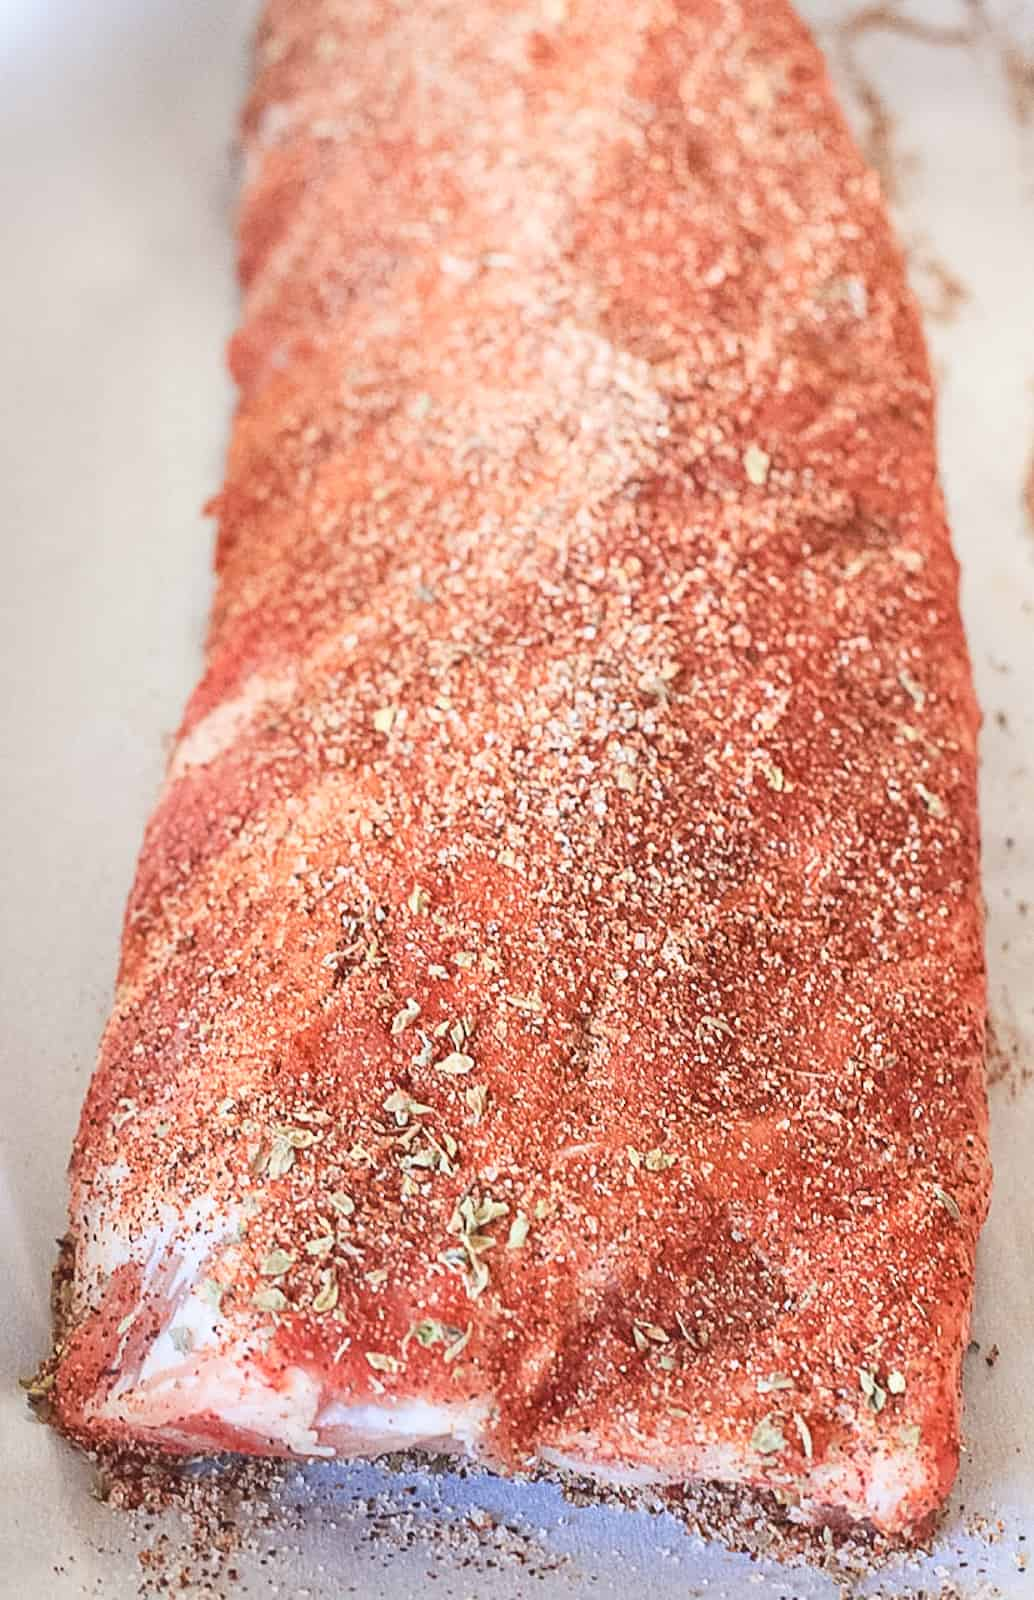 Raw dry rubbed rack of ribs.